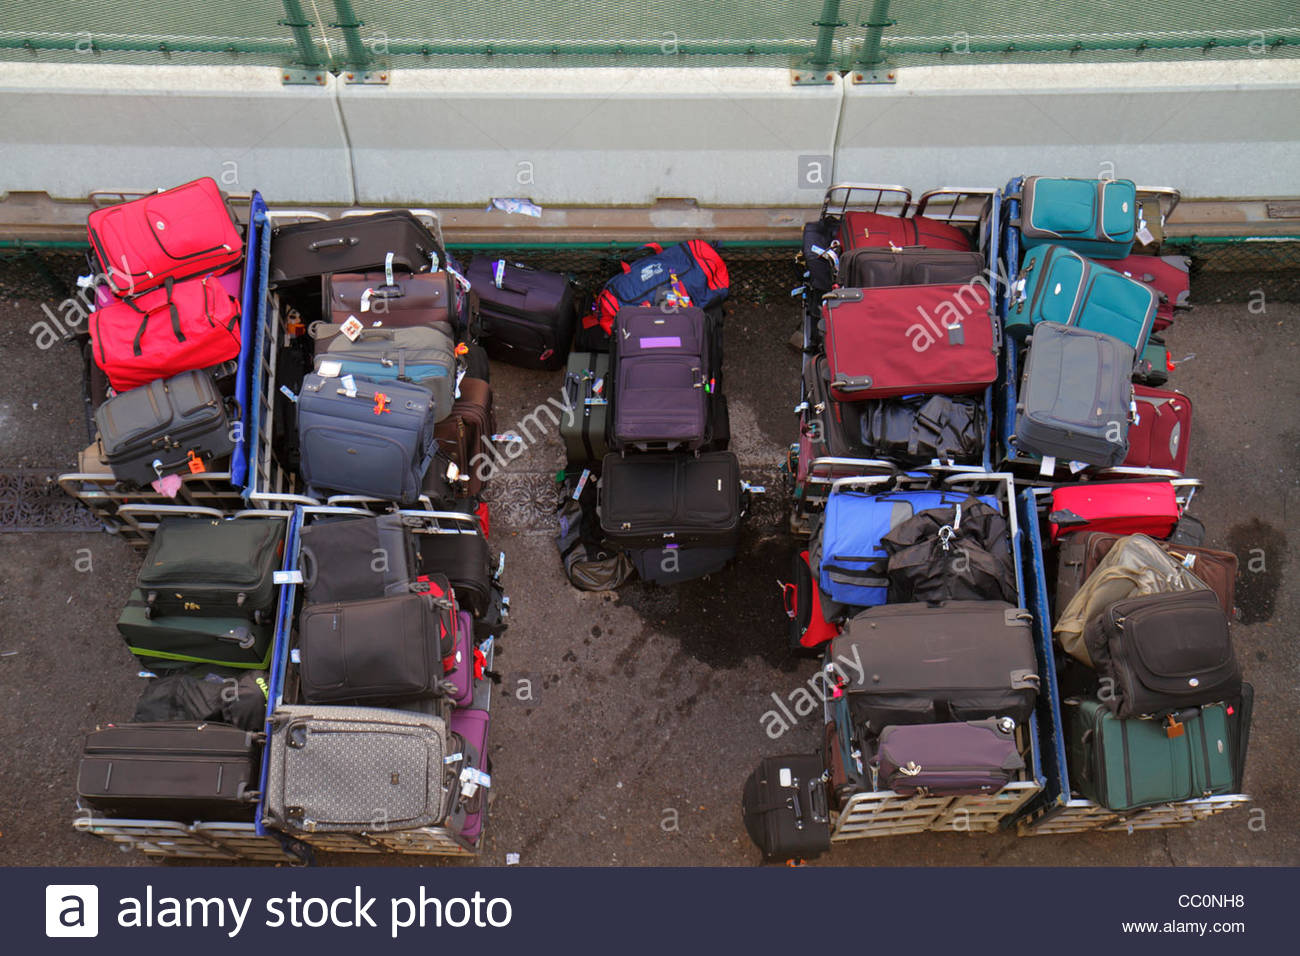 United Checked Baggage Size New Orleans Louisiana Port Of New Orleans Cruise Ship